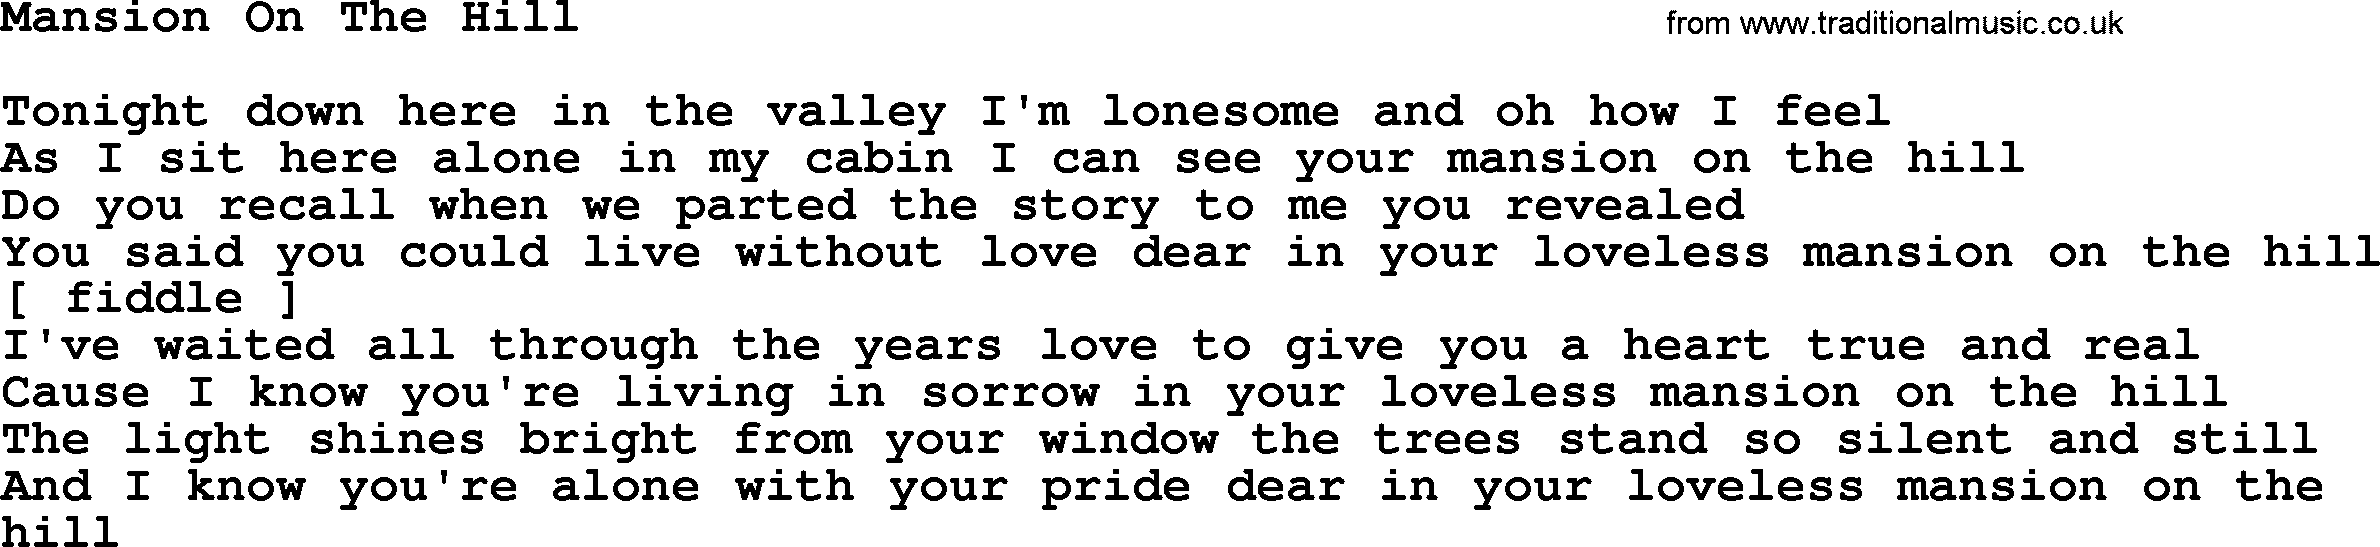 Mansion on the hill lyrics